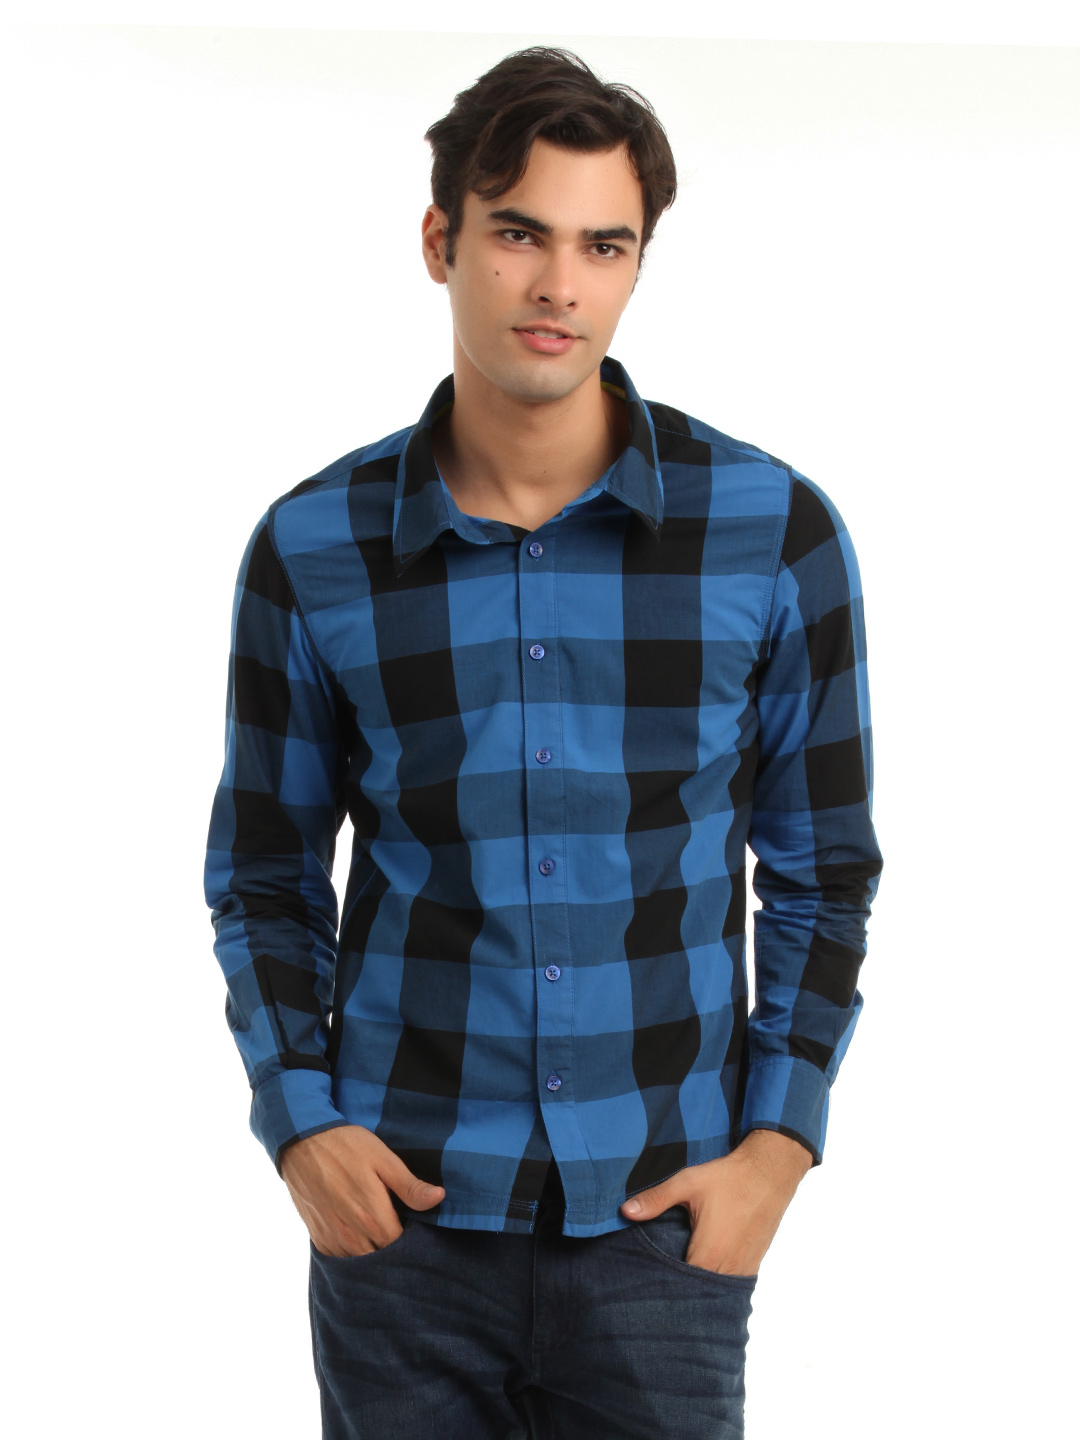 Adidas Men Blue & Black Check Shirt